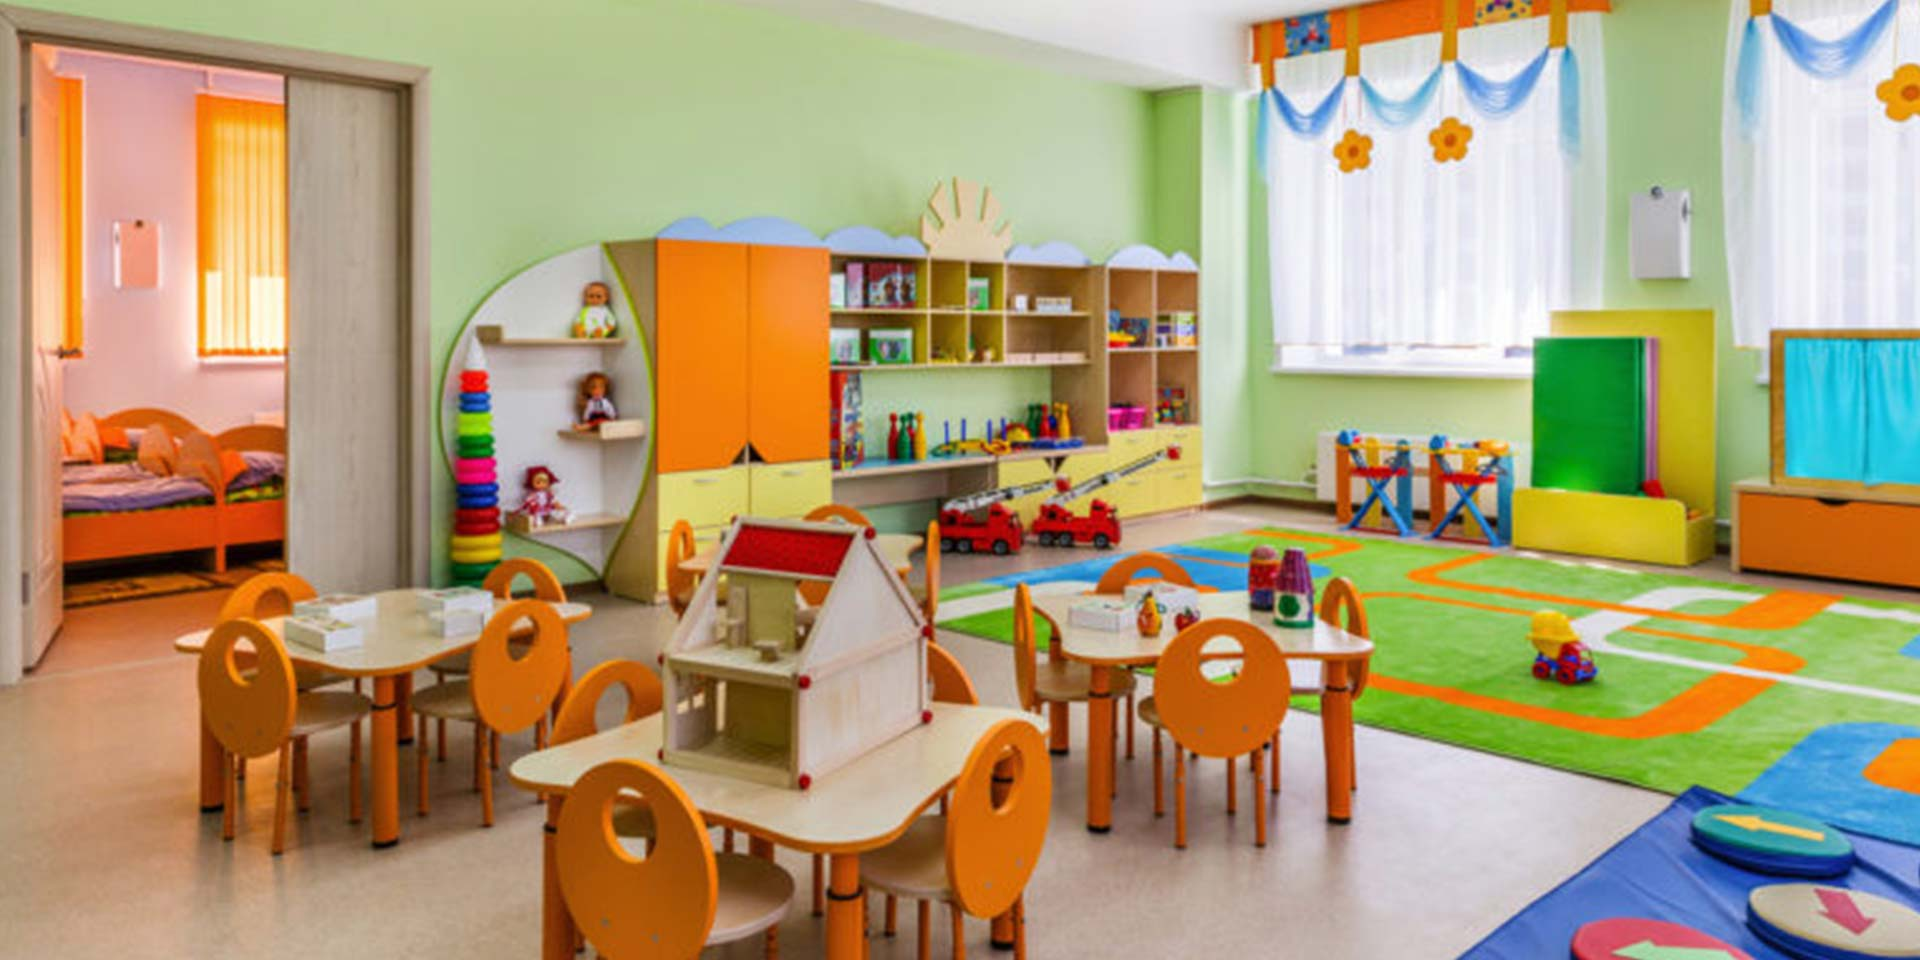 How to Start A Daycare: The Ultimate Guide | Procare Blog